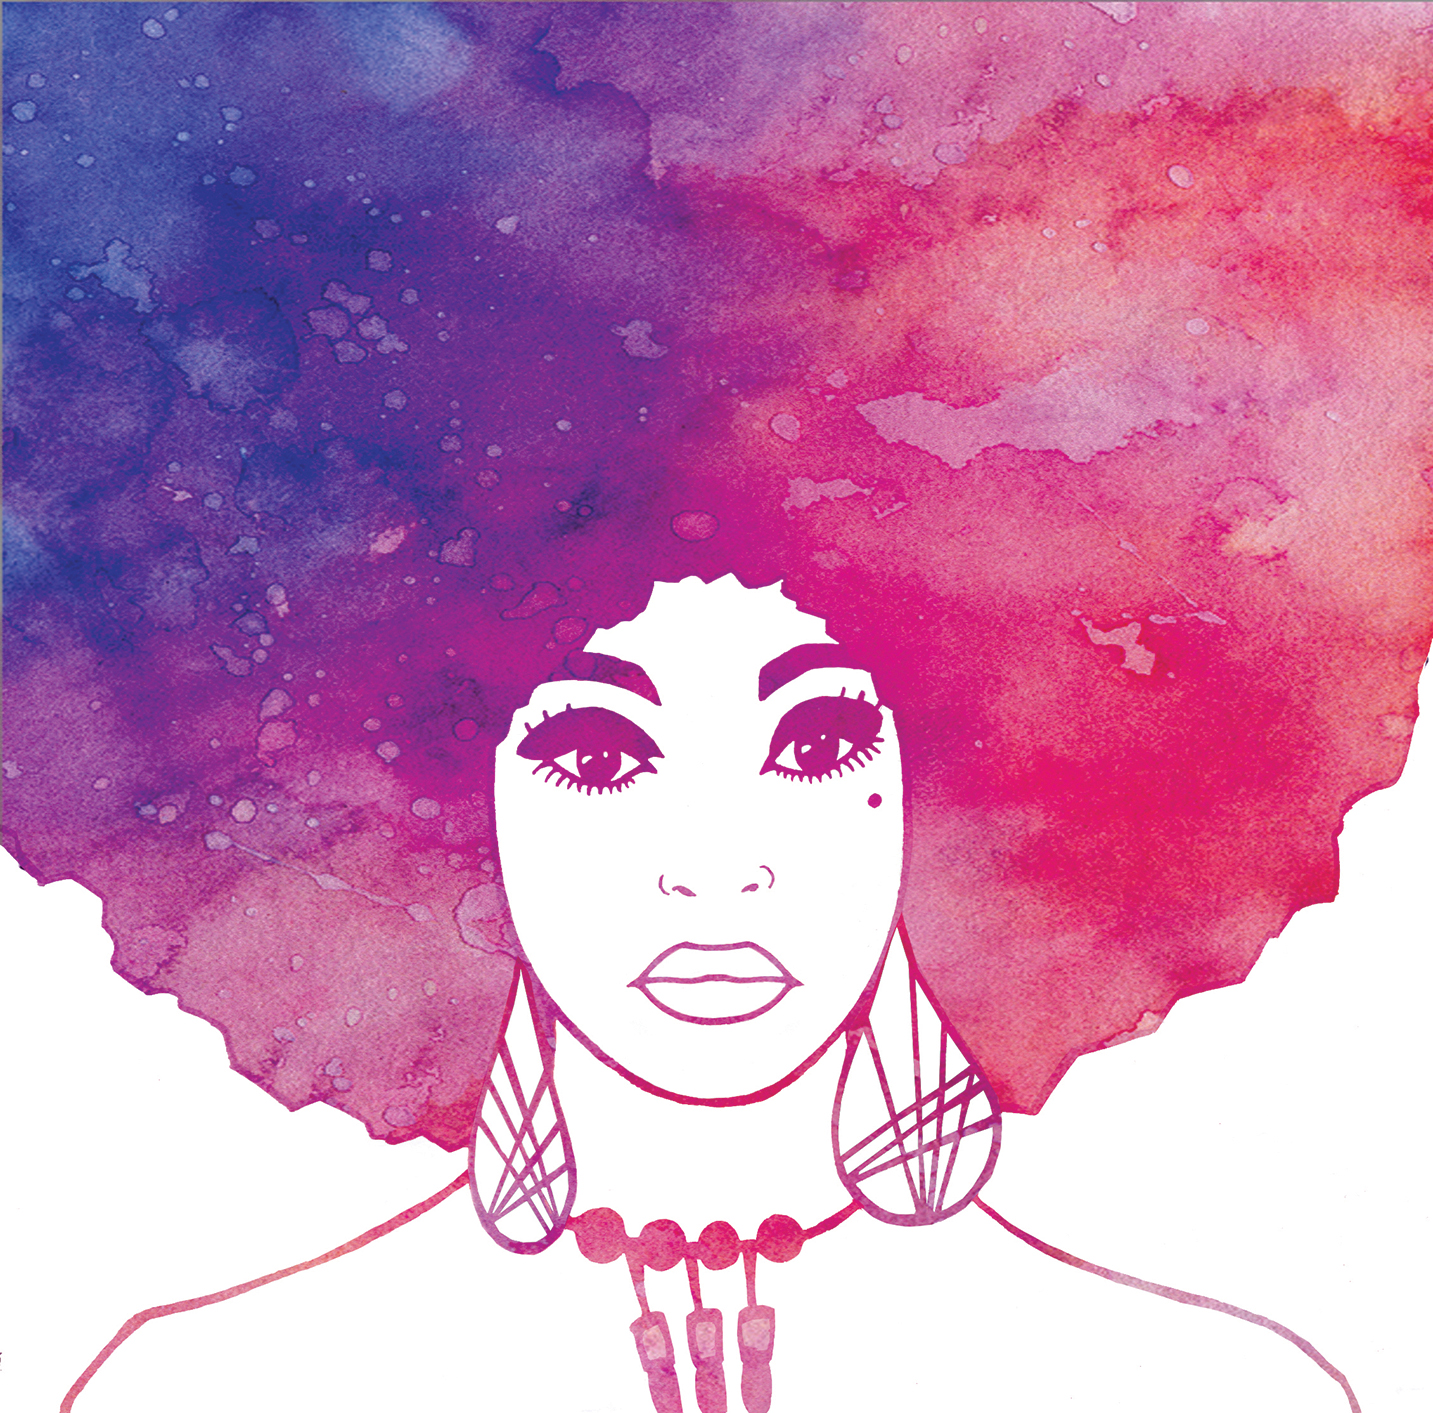 Afro Woman Art Print Limited Edition Watercolour